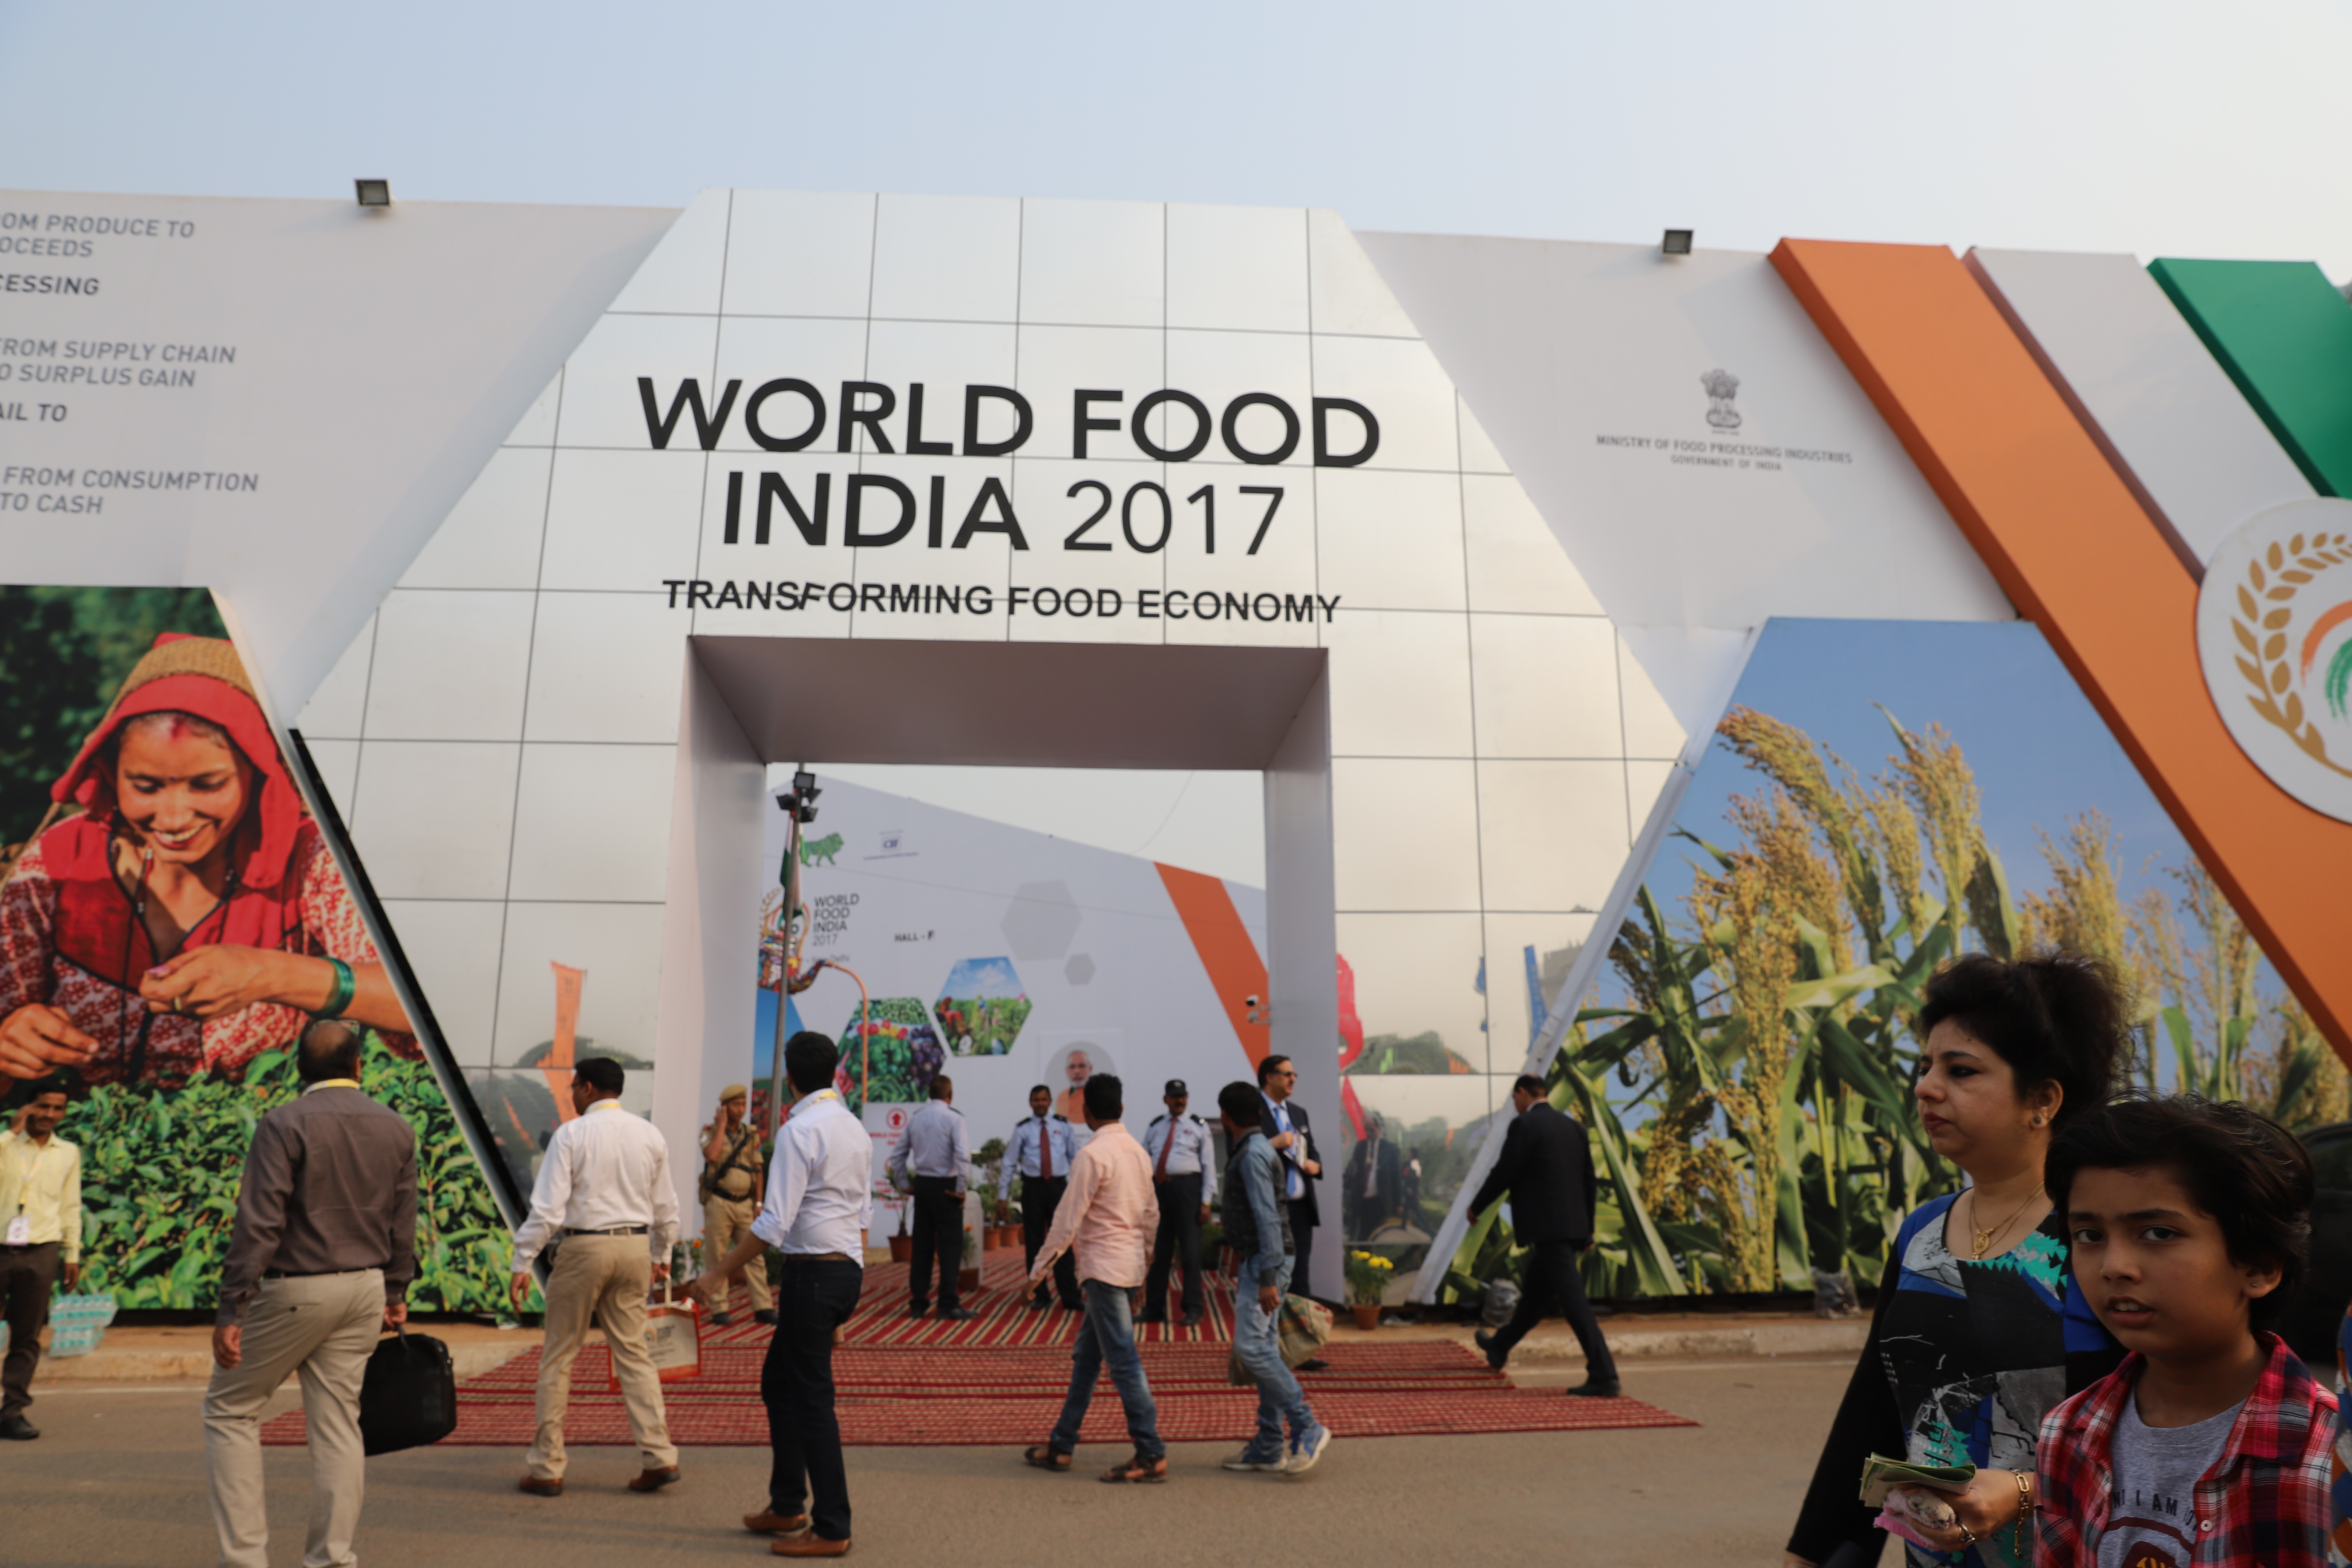 Apart form conferences and exhibitions aiming to share opportunities across the food economy, WFI also offers an experience to savour both Indian and international delicacies